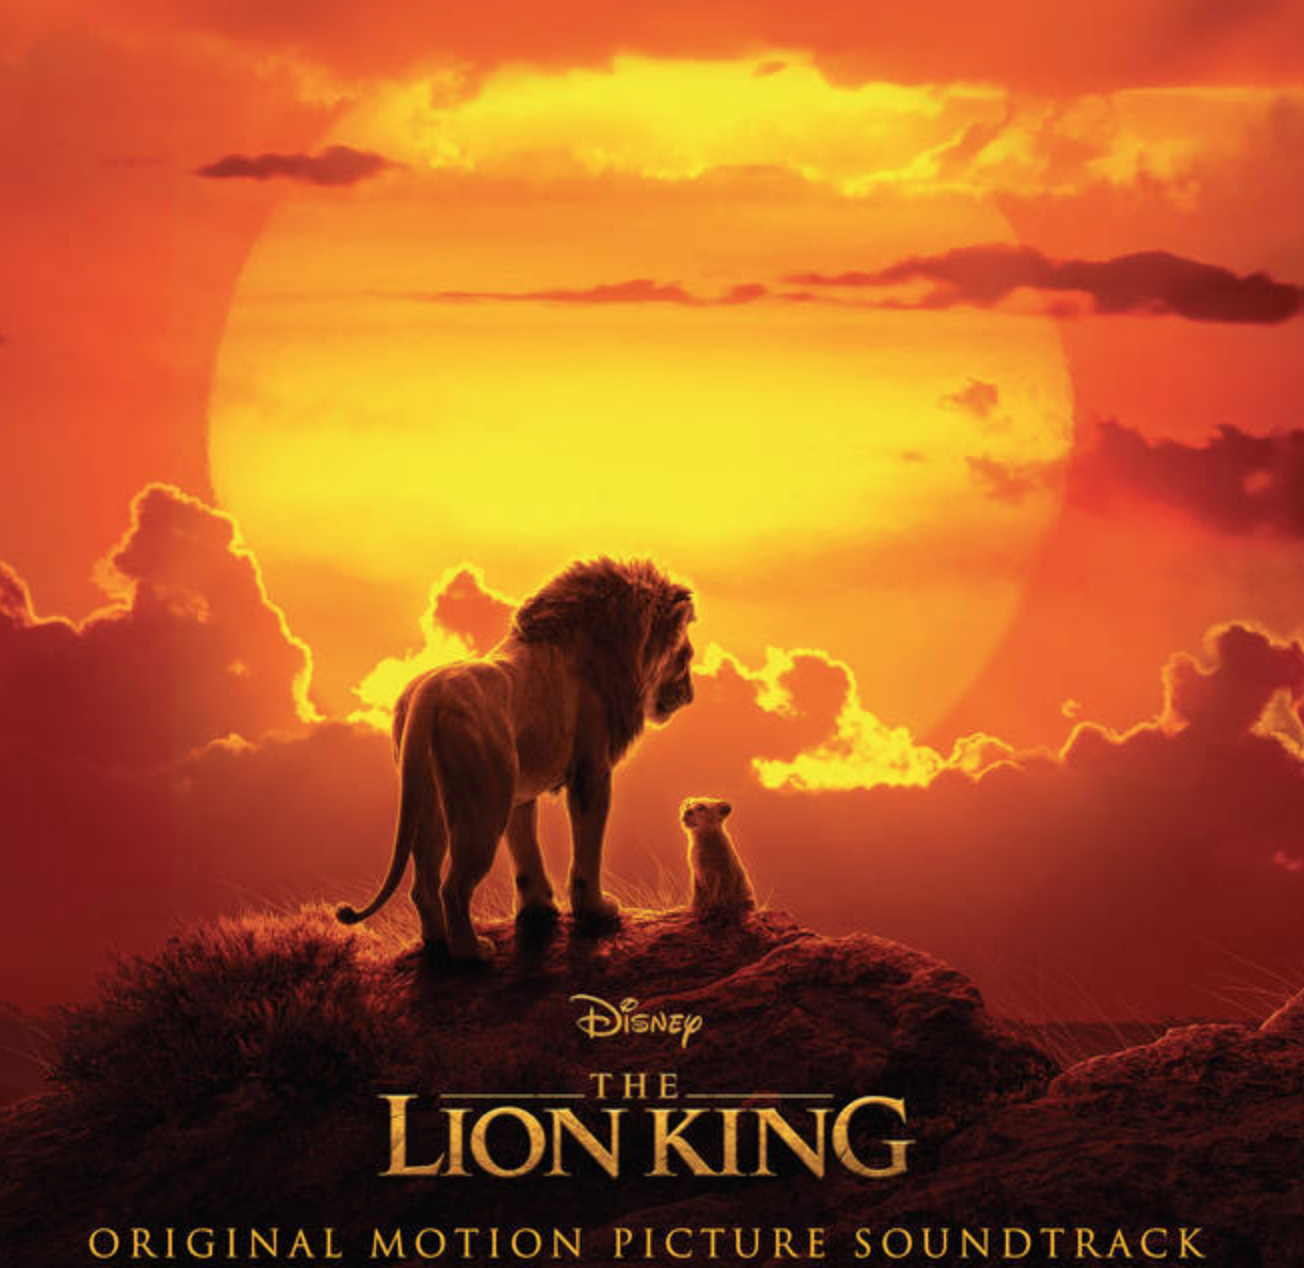 lion king 2019 ost artwork Soundtrack for The Lion King remake, featuring Beyoncé and Donald Glover, has arrived: Stream